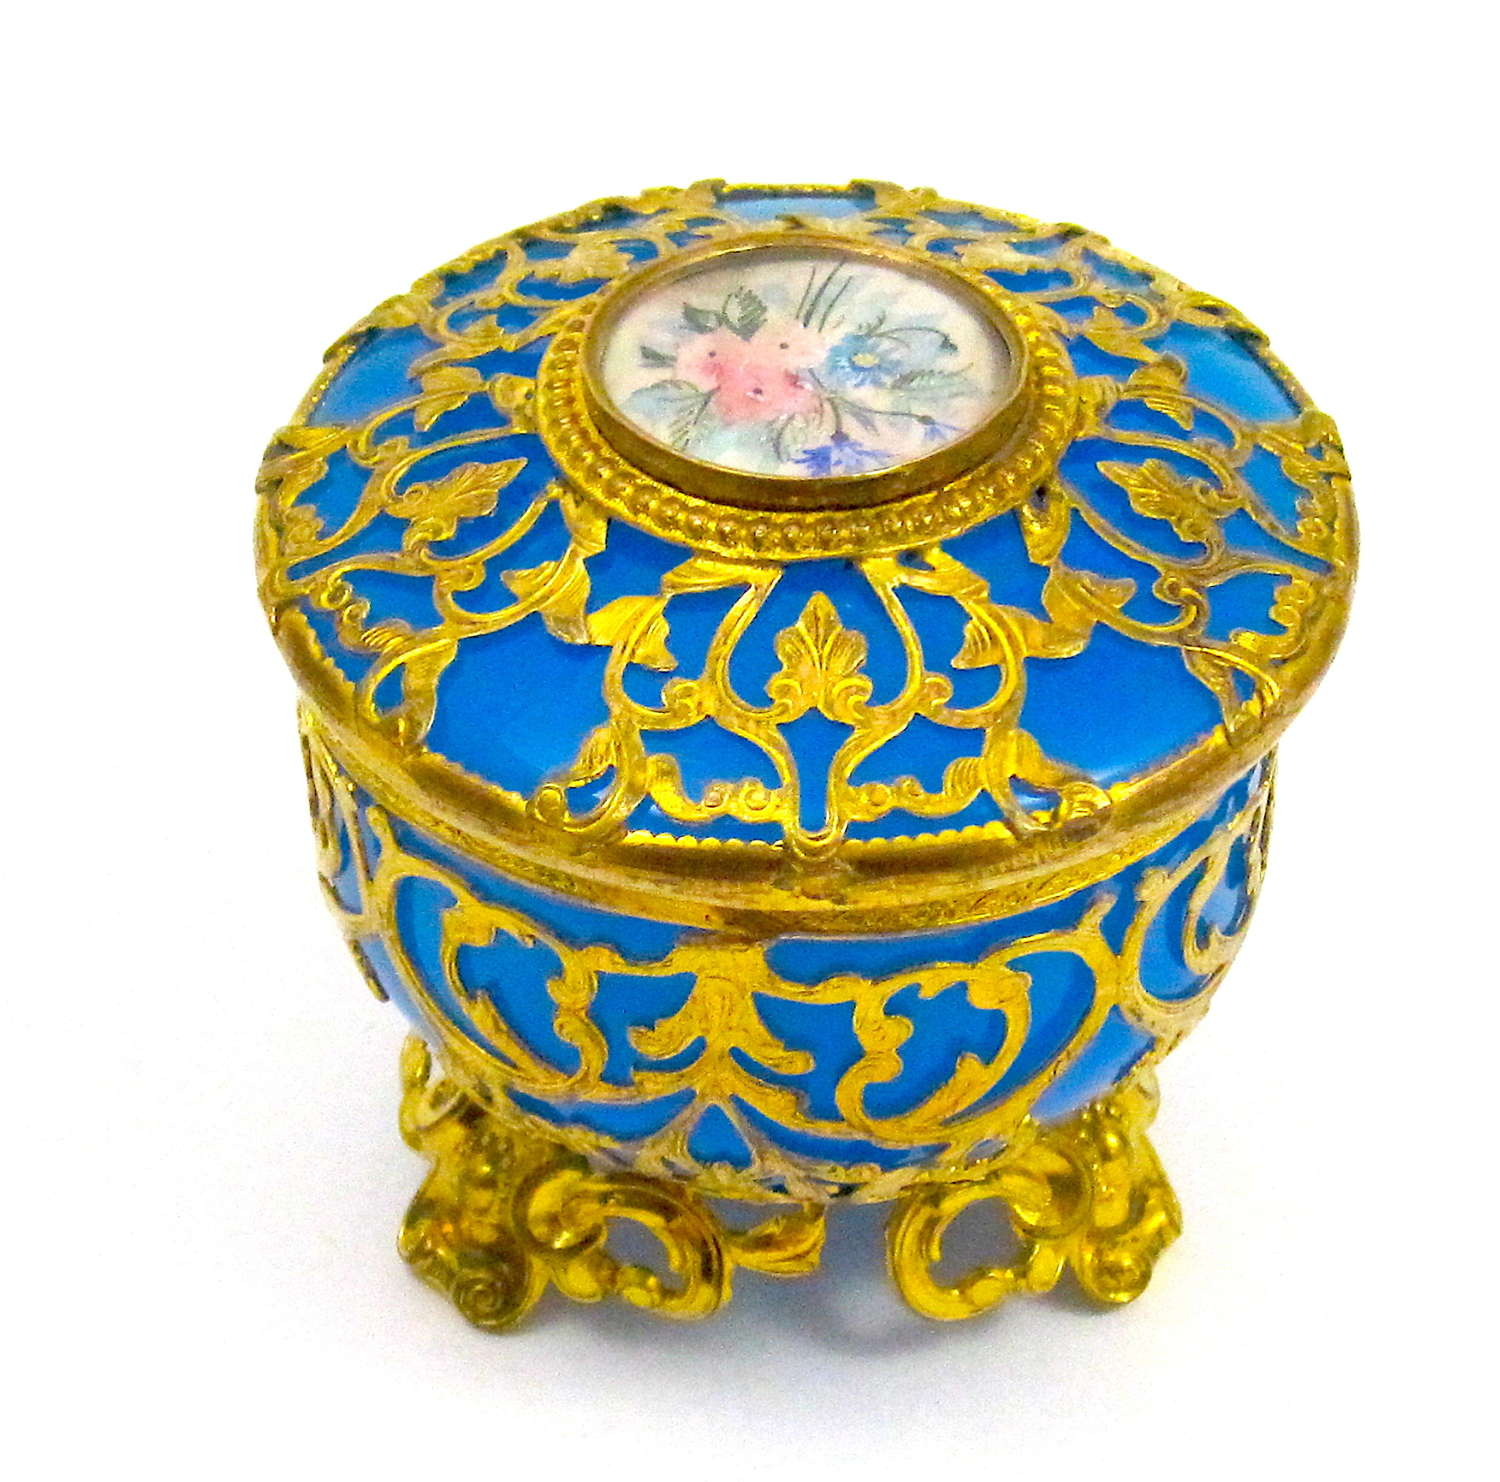 Antique French Blue Opaline Glass Box with Miniature of Flowers.